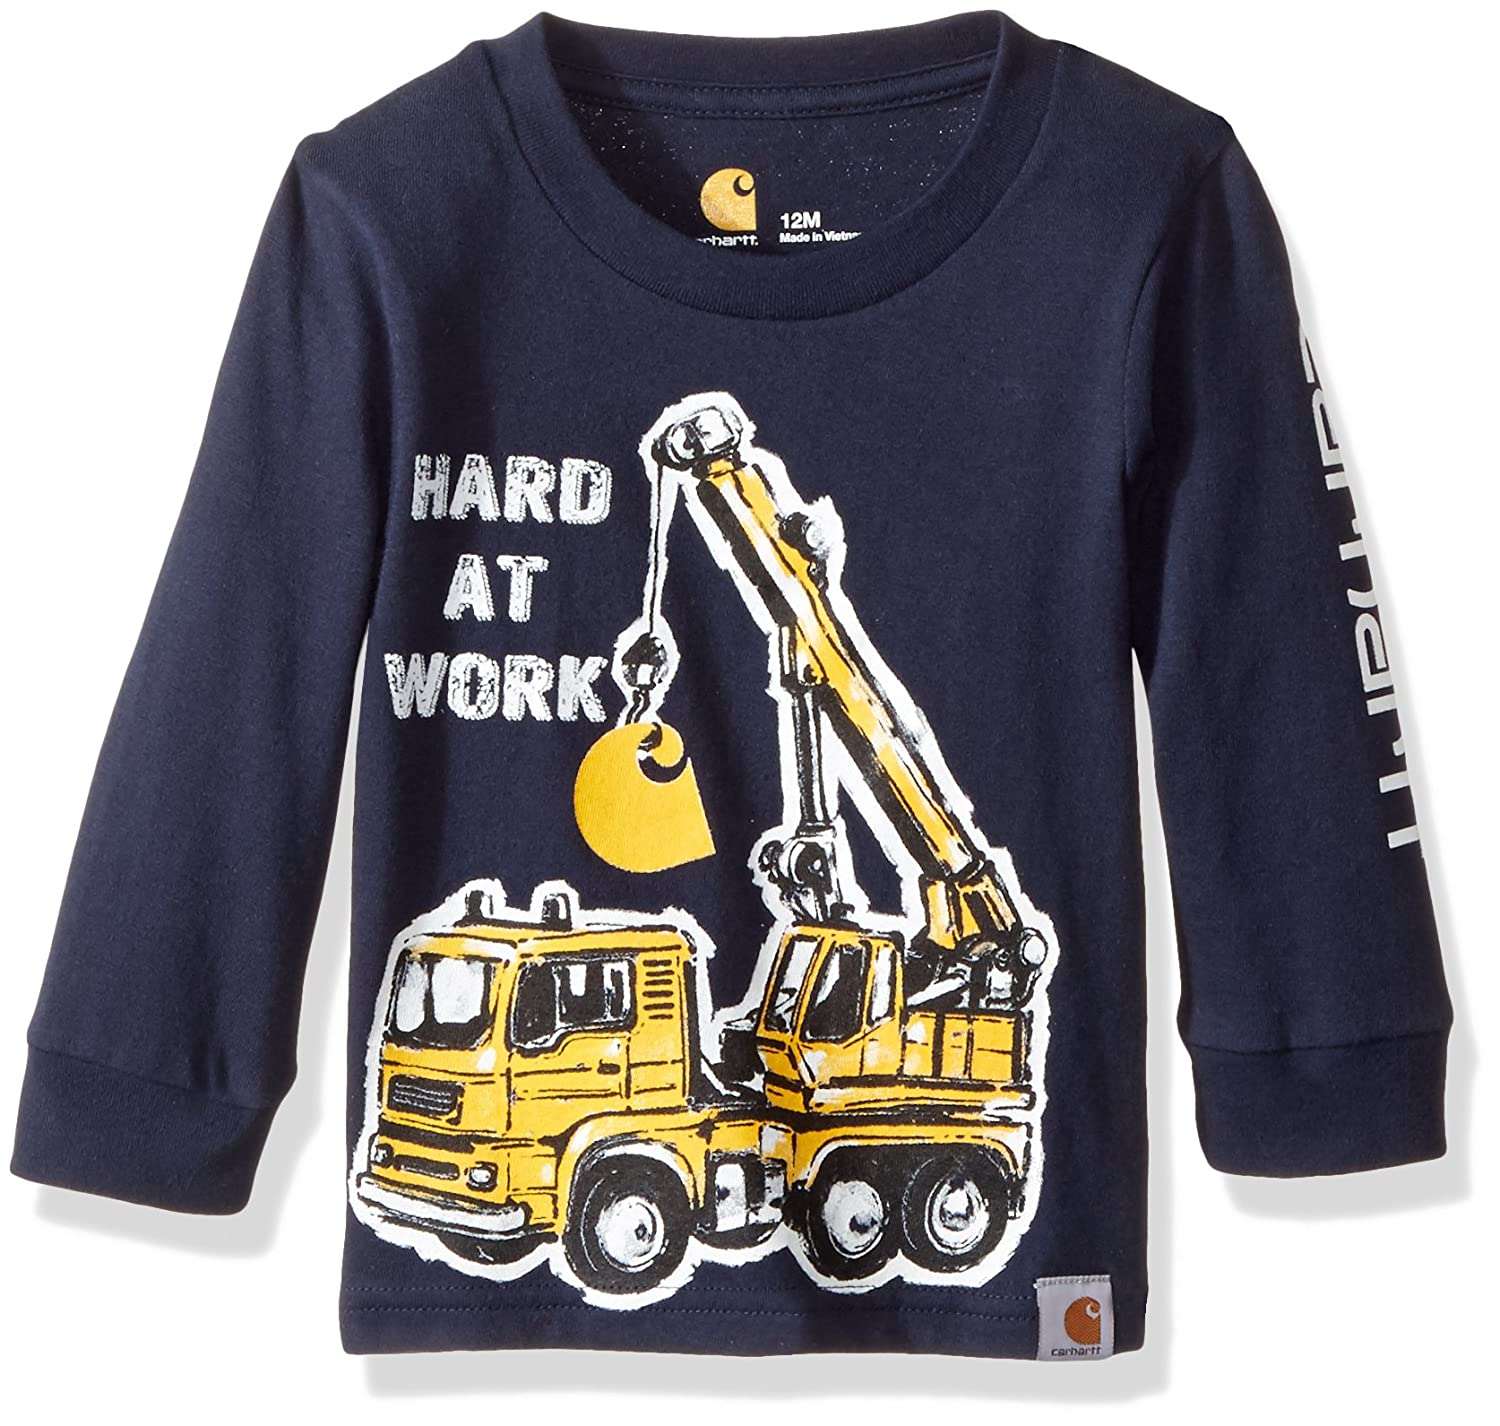 Carhartt Baby Boys' Long Sleeve Tee Shirt